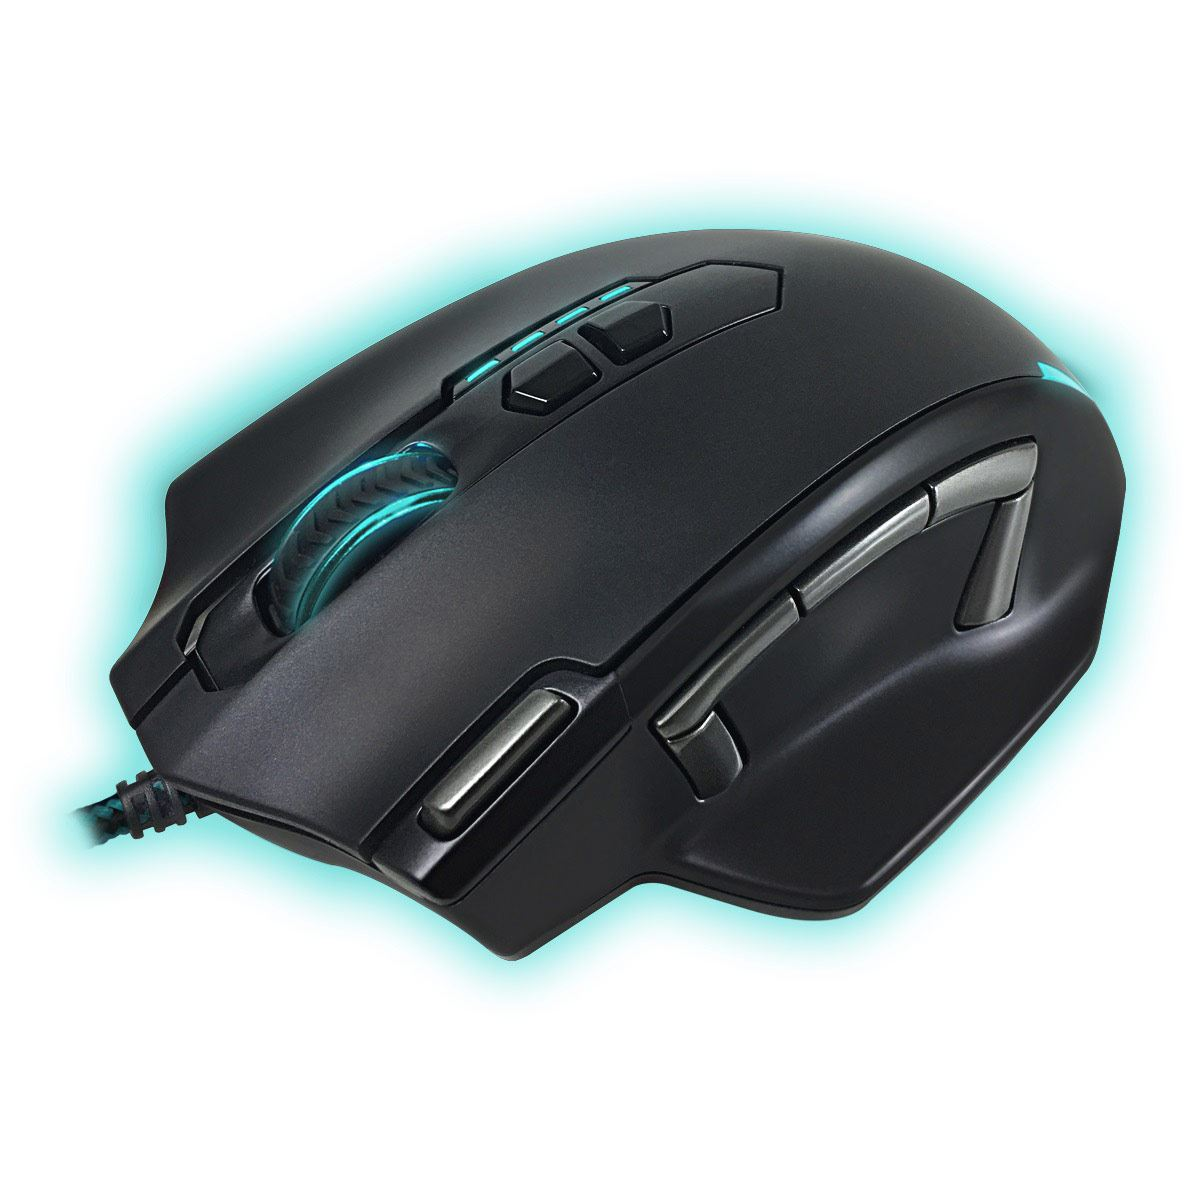 Mouse Gamer 11 Botones Programables Dominion Vortred